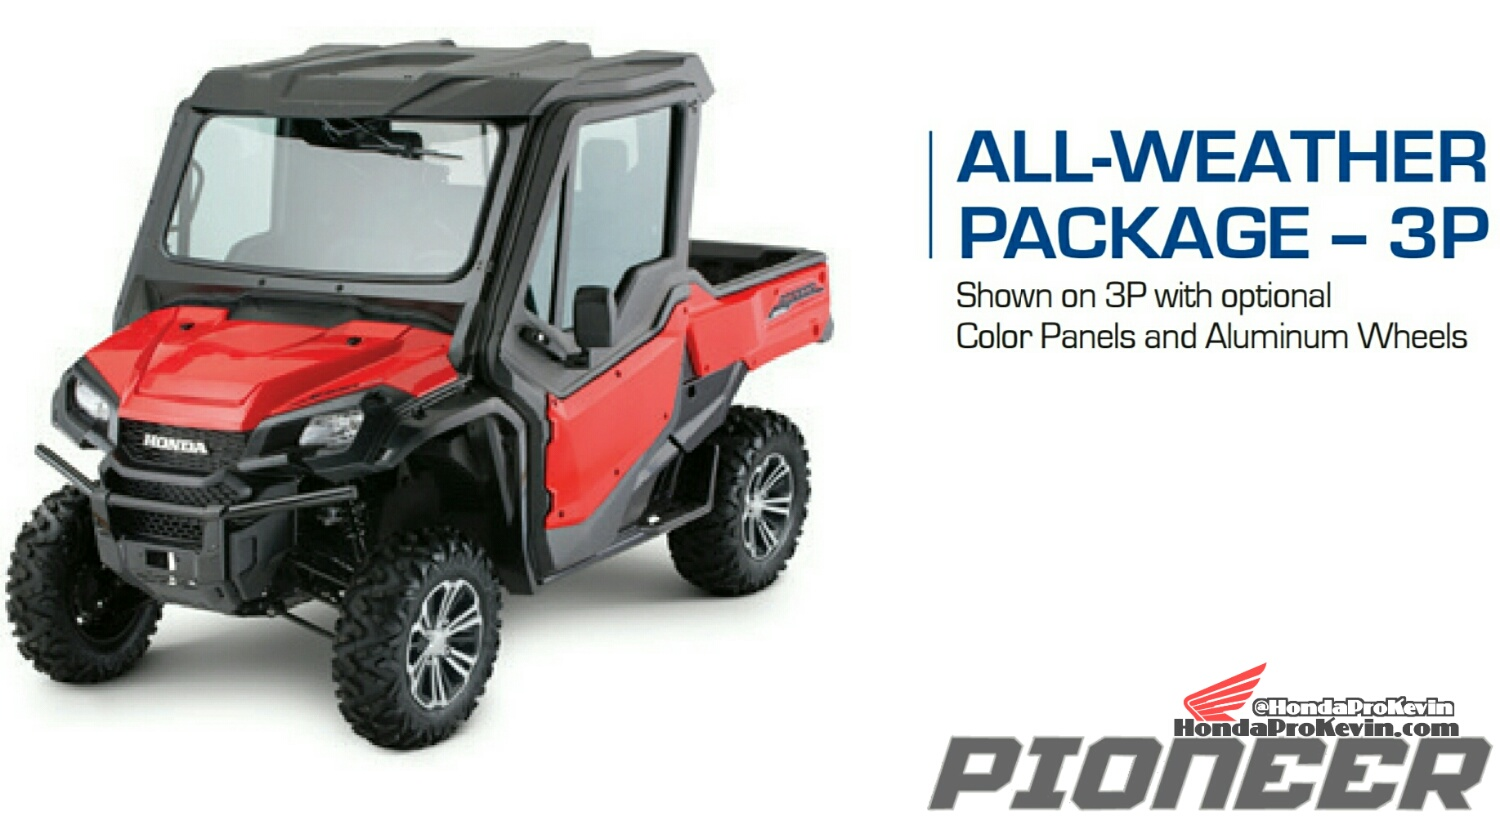 Honda Pioneer 1000 All Weather Package - Accessories - Parts - SxS / UTV / Side by Side ATV